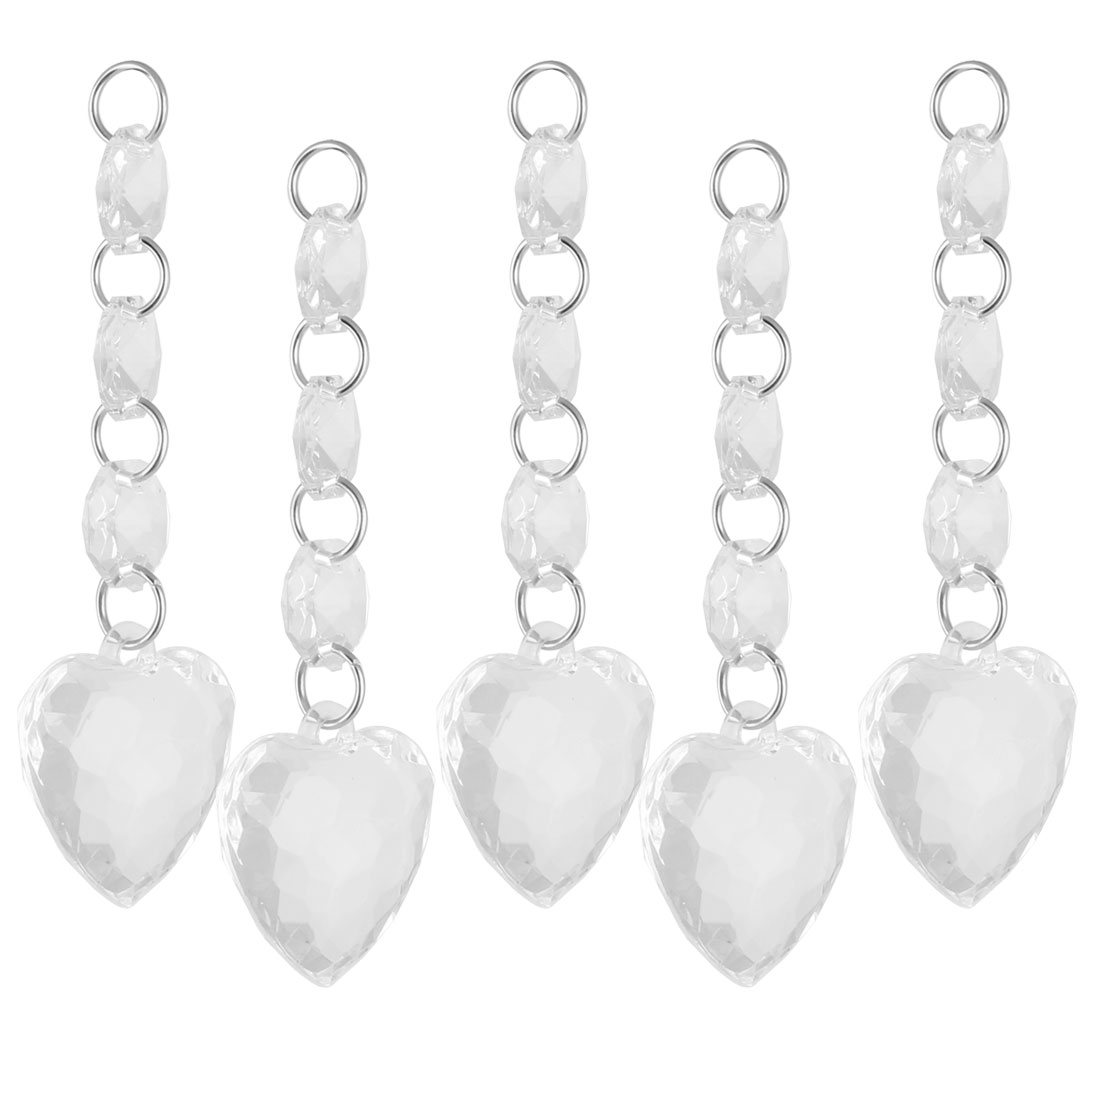 Home Office Hall Plastic Heart Shaped Sparkling Chandelier Crystal Pendant 5 Pcs